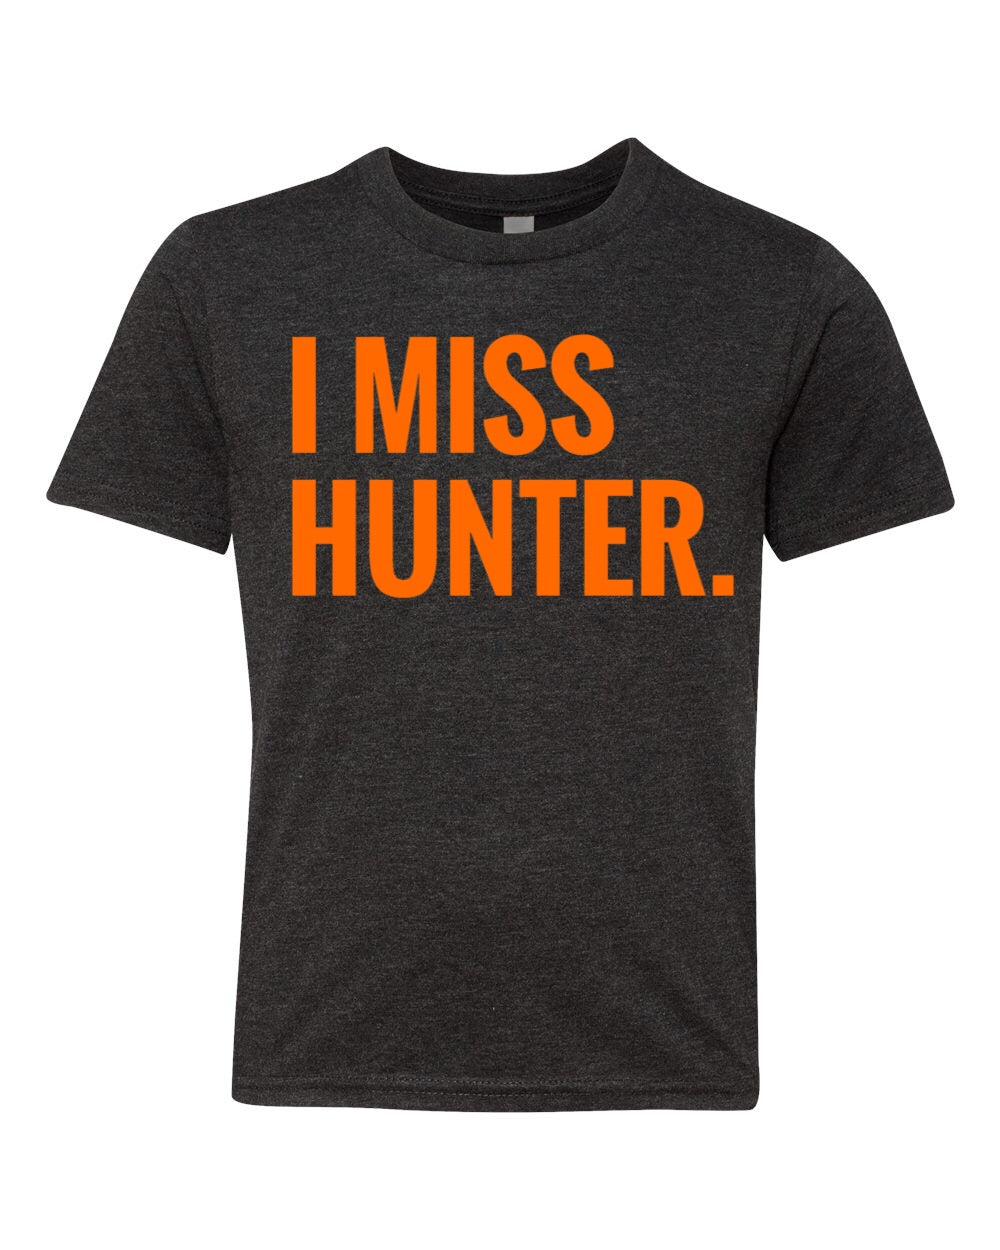 I MISS HUNTER. Kids t-shirt